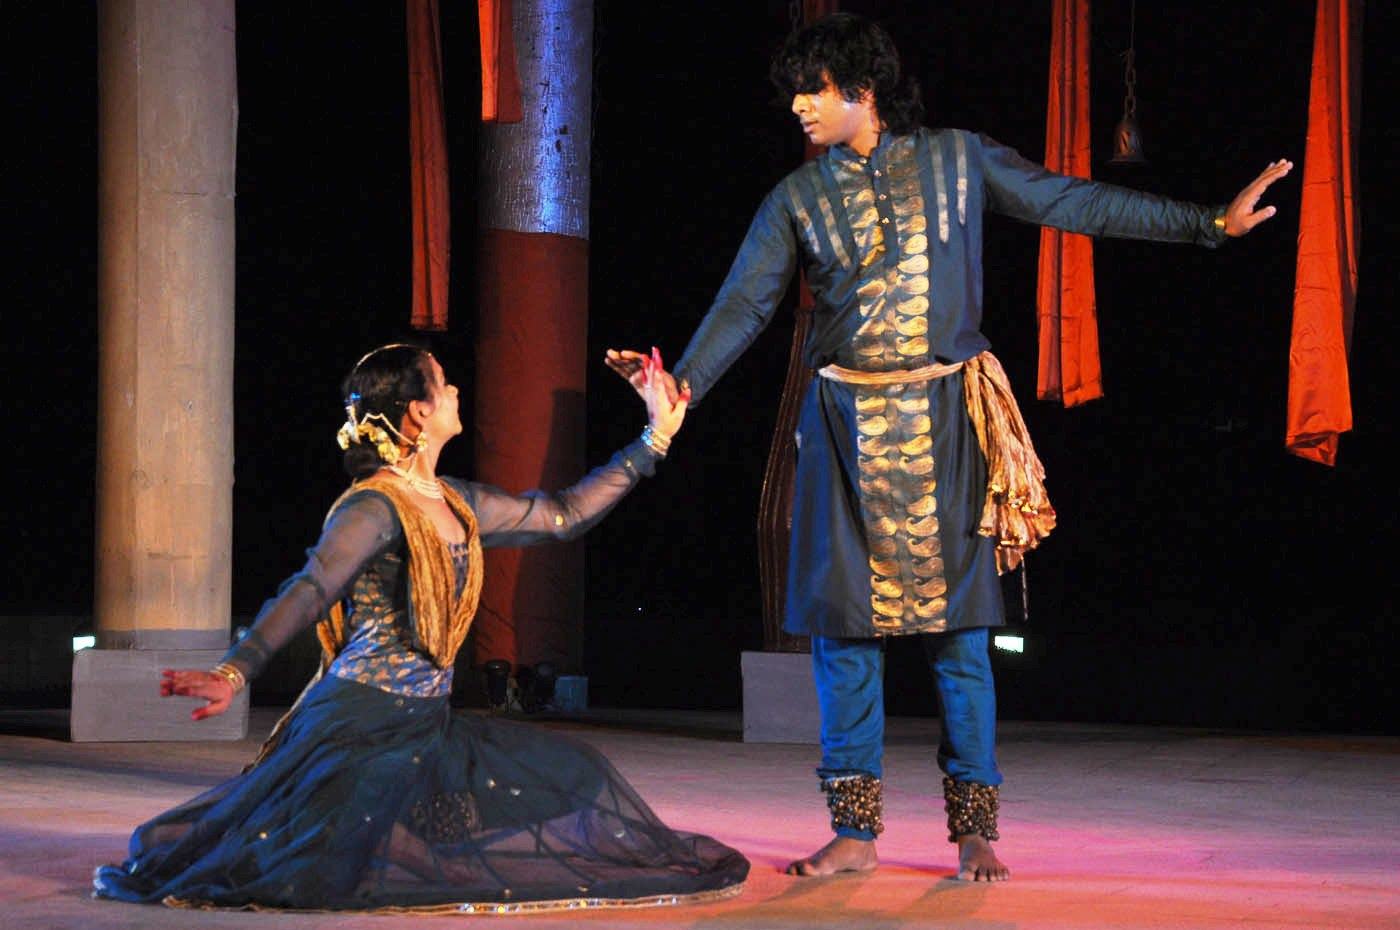 Shubhi Johari and Amit Khinchi from at 7th PRAGJYOTI INTERNATIONAL DANCE FESTIVAL GHY 5